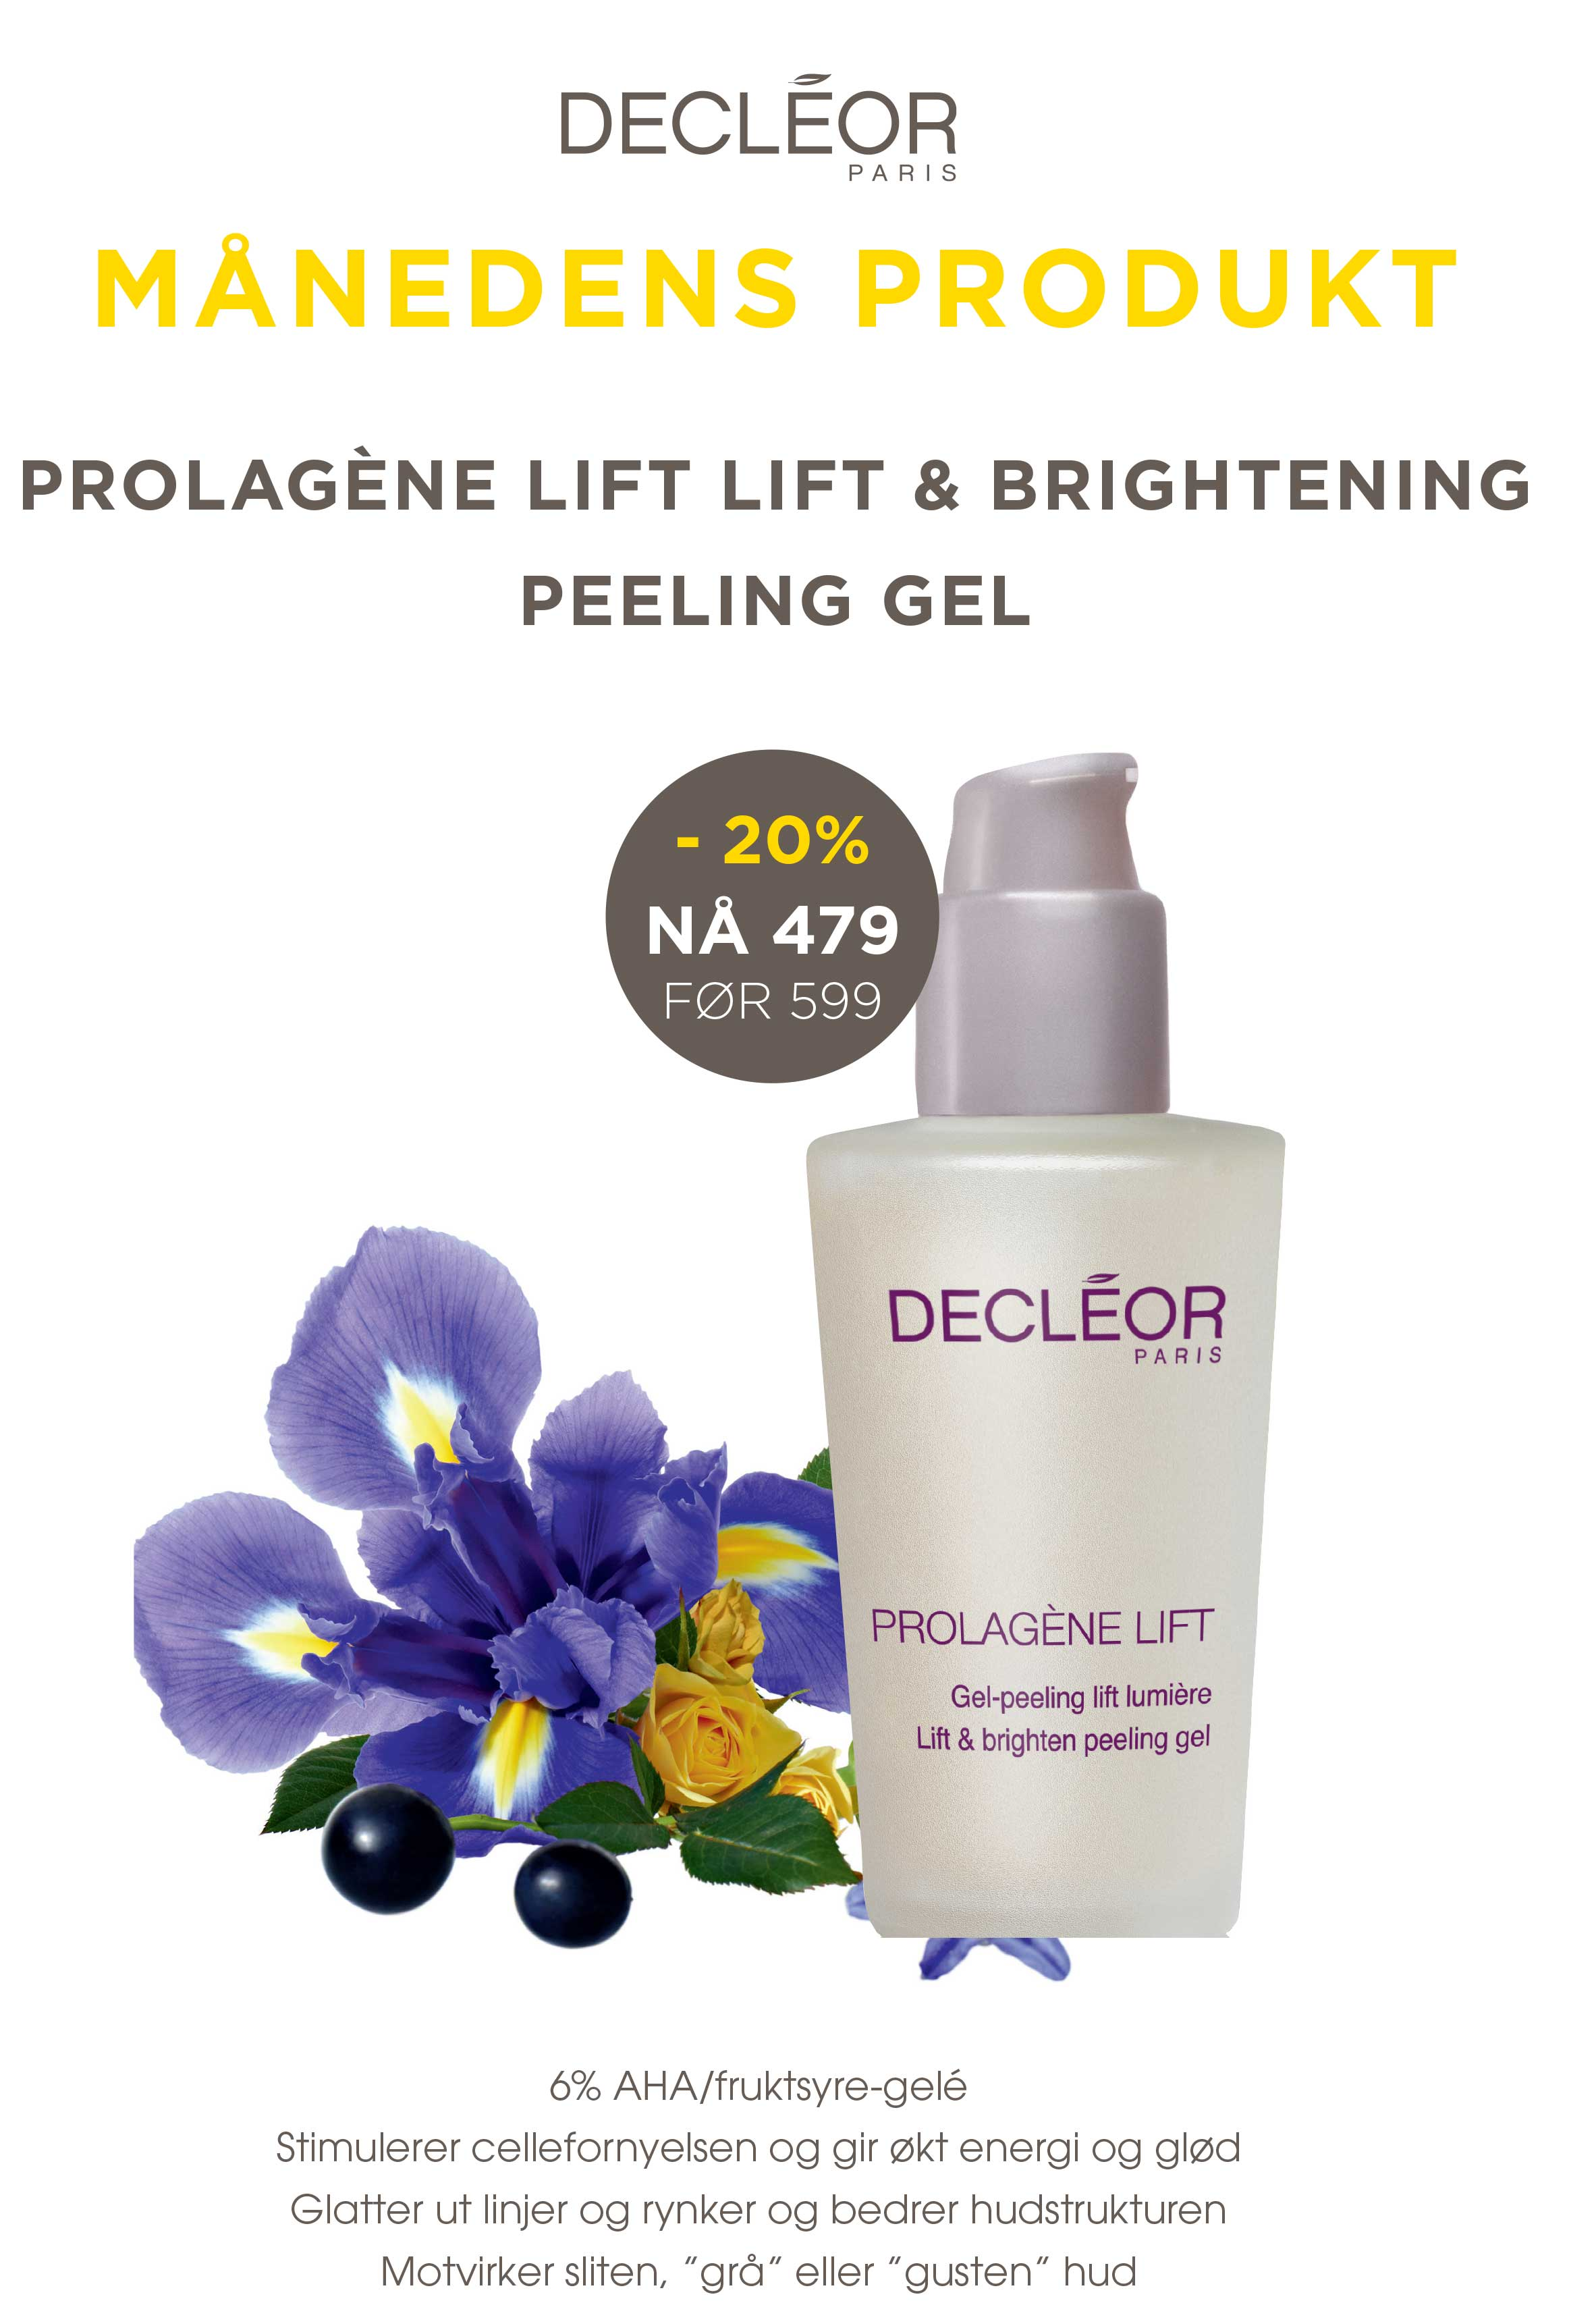 A4-månedens-produkt-Prolagene-Lift-and-brightening-peeling-gel_steptember